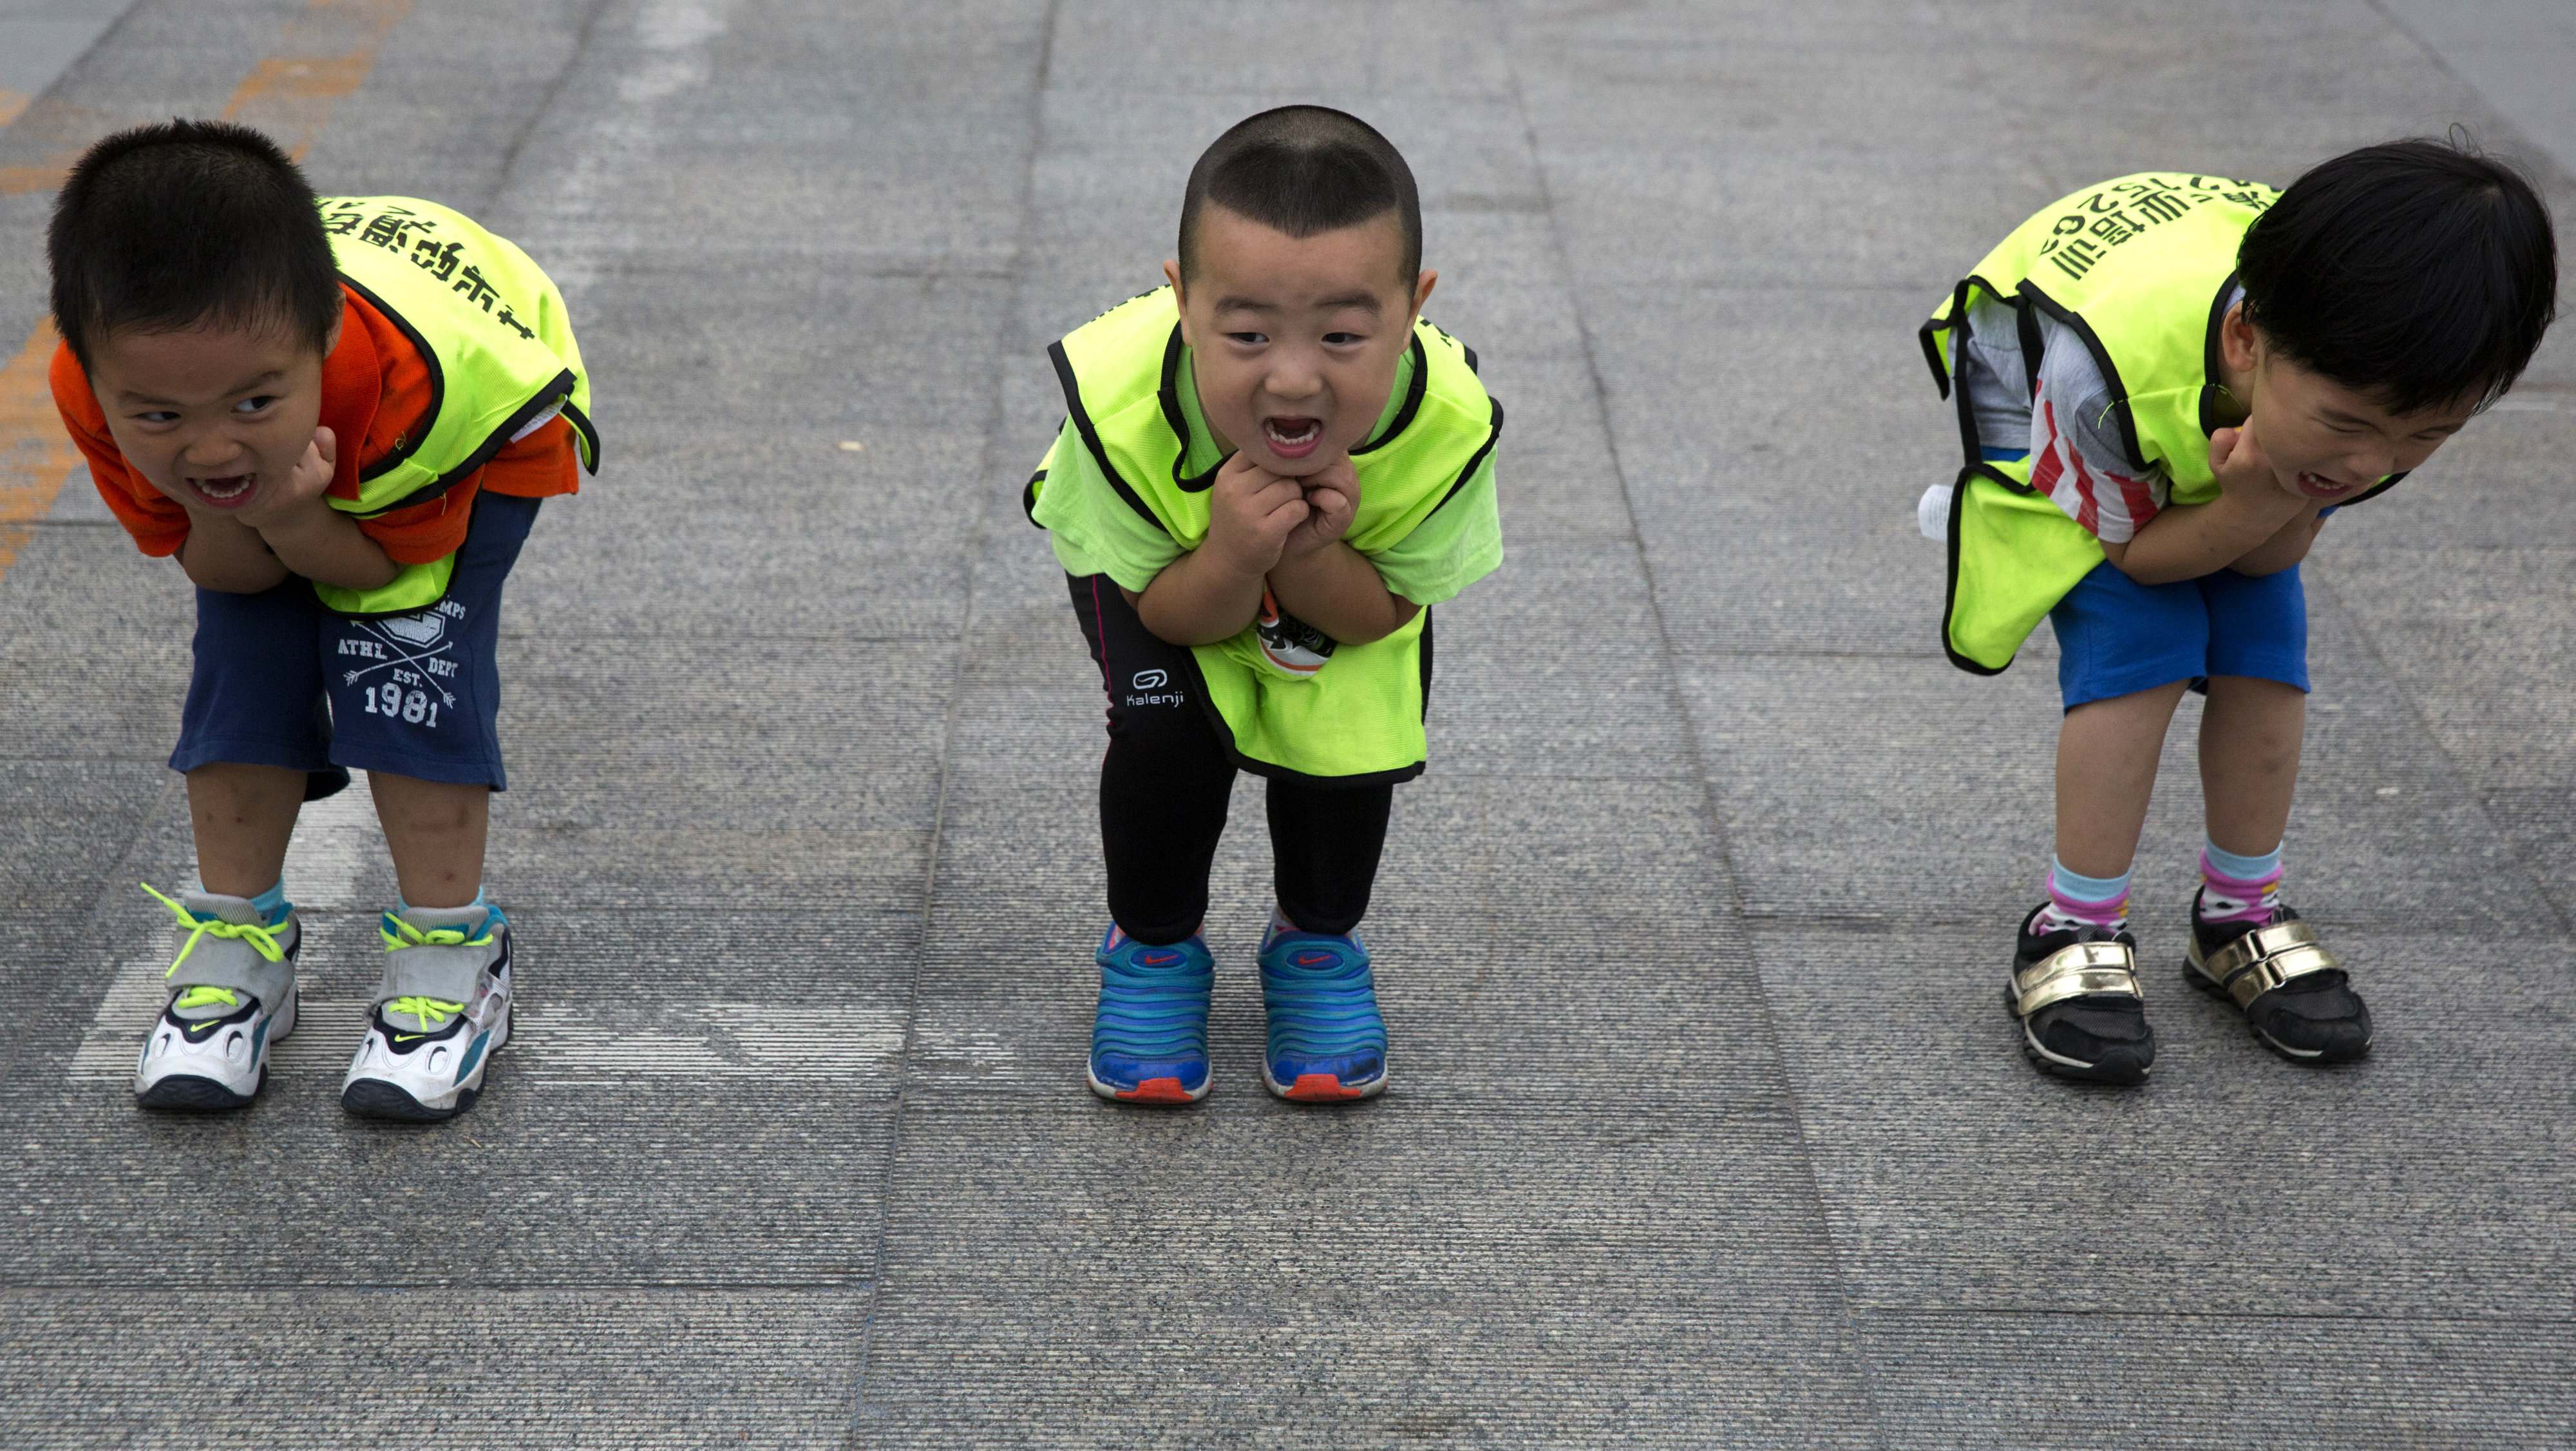 Children practice their postures during a roller blading class outside a park in Beijing, China, Wednesday, June 24, 2015.